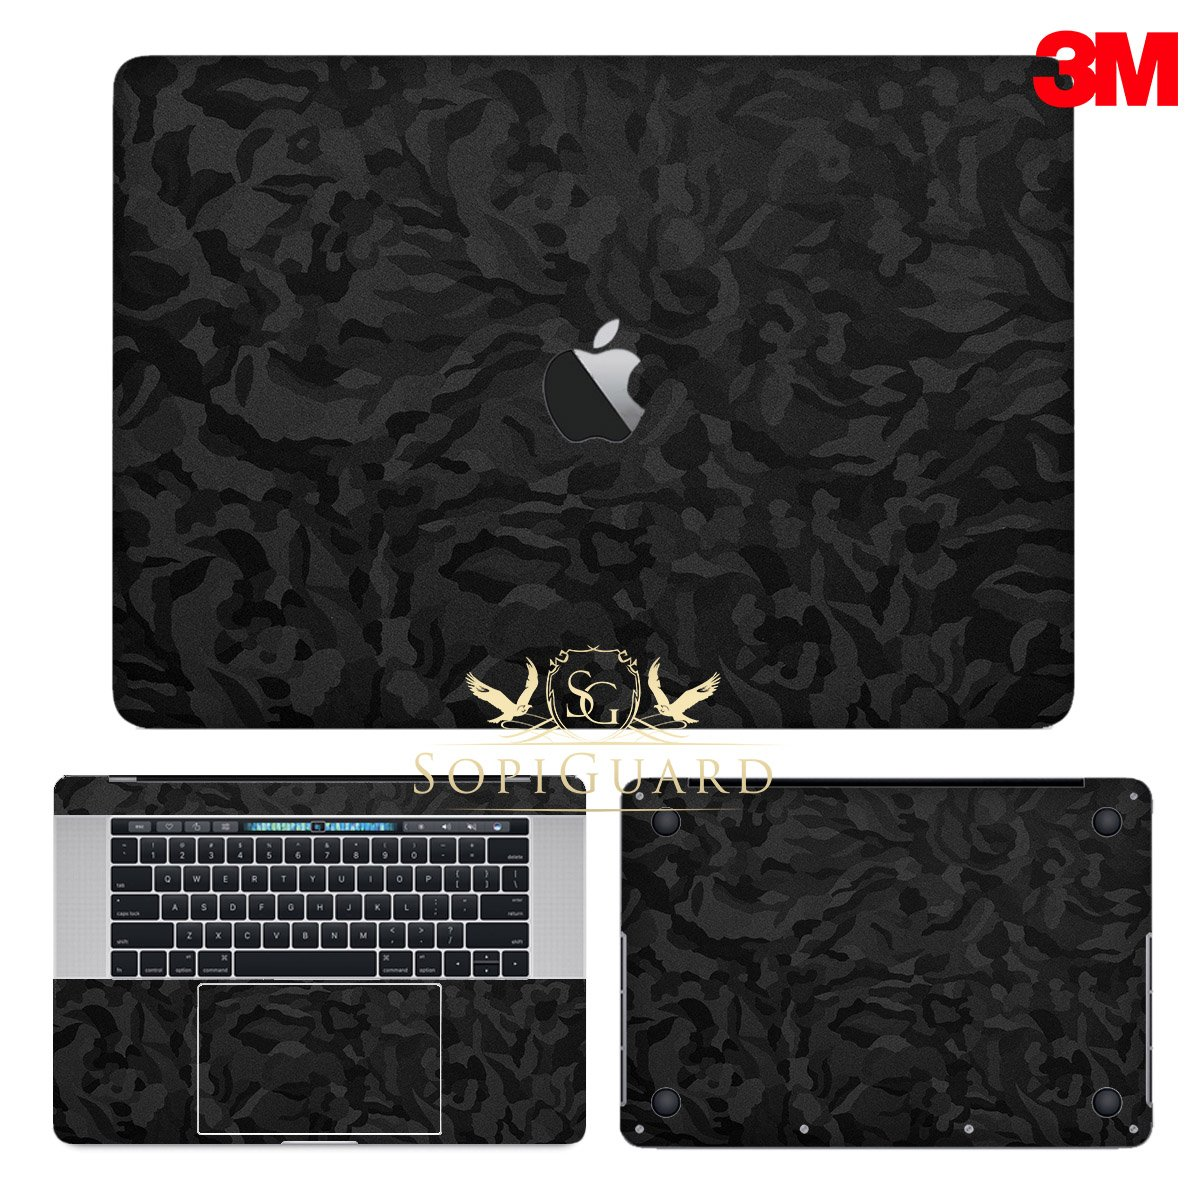 SopiGuard 3M Black Camo Full Body Precision Edge-to-Edge Coverage Vinyl Sticker Skin for Apple Macbook Pro 15 Touch Bar (A1707 A1990)